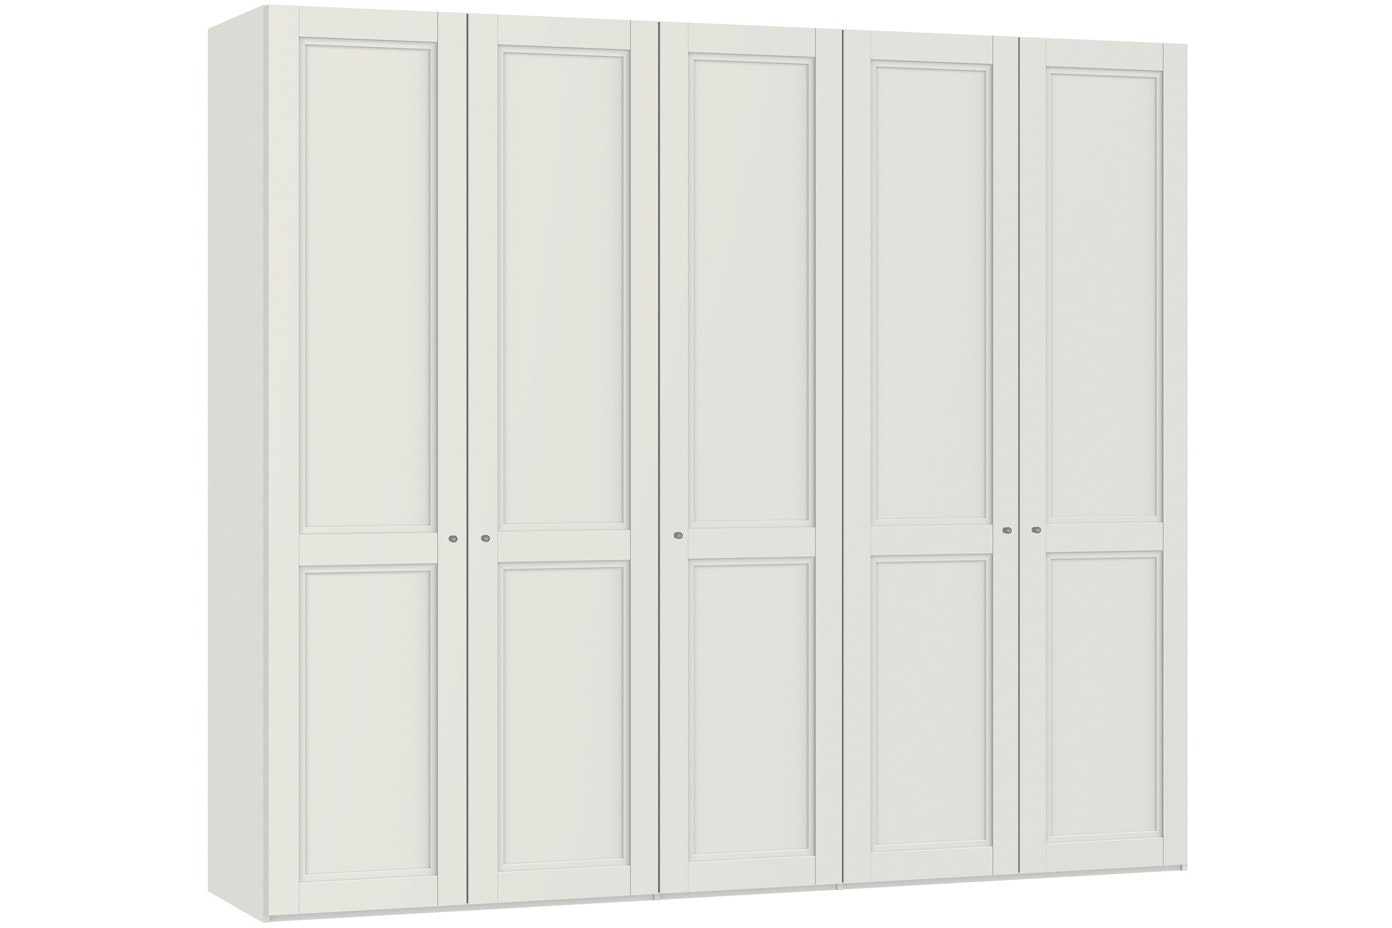 Emily Hinged 5 Door Wardrobe 253Cm | Country